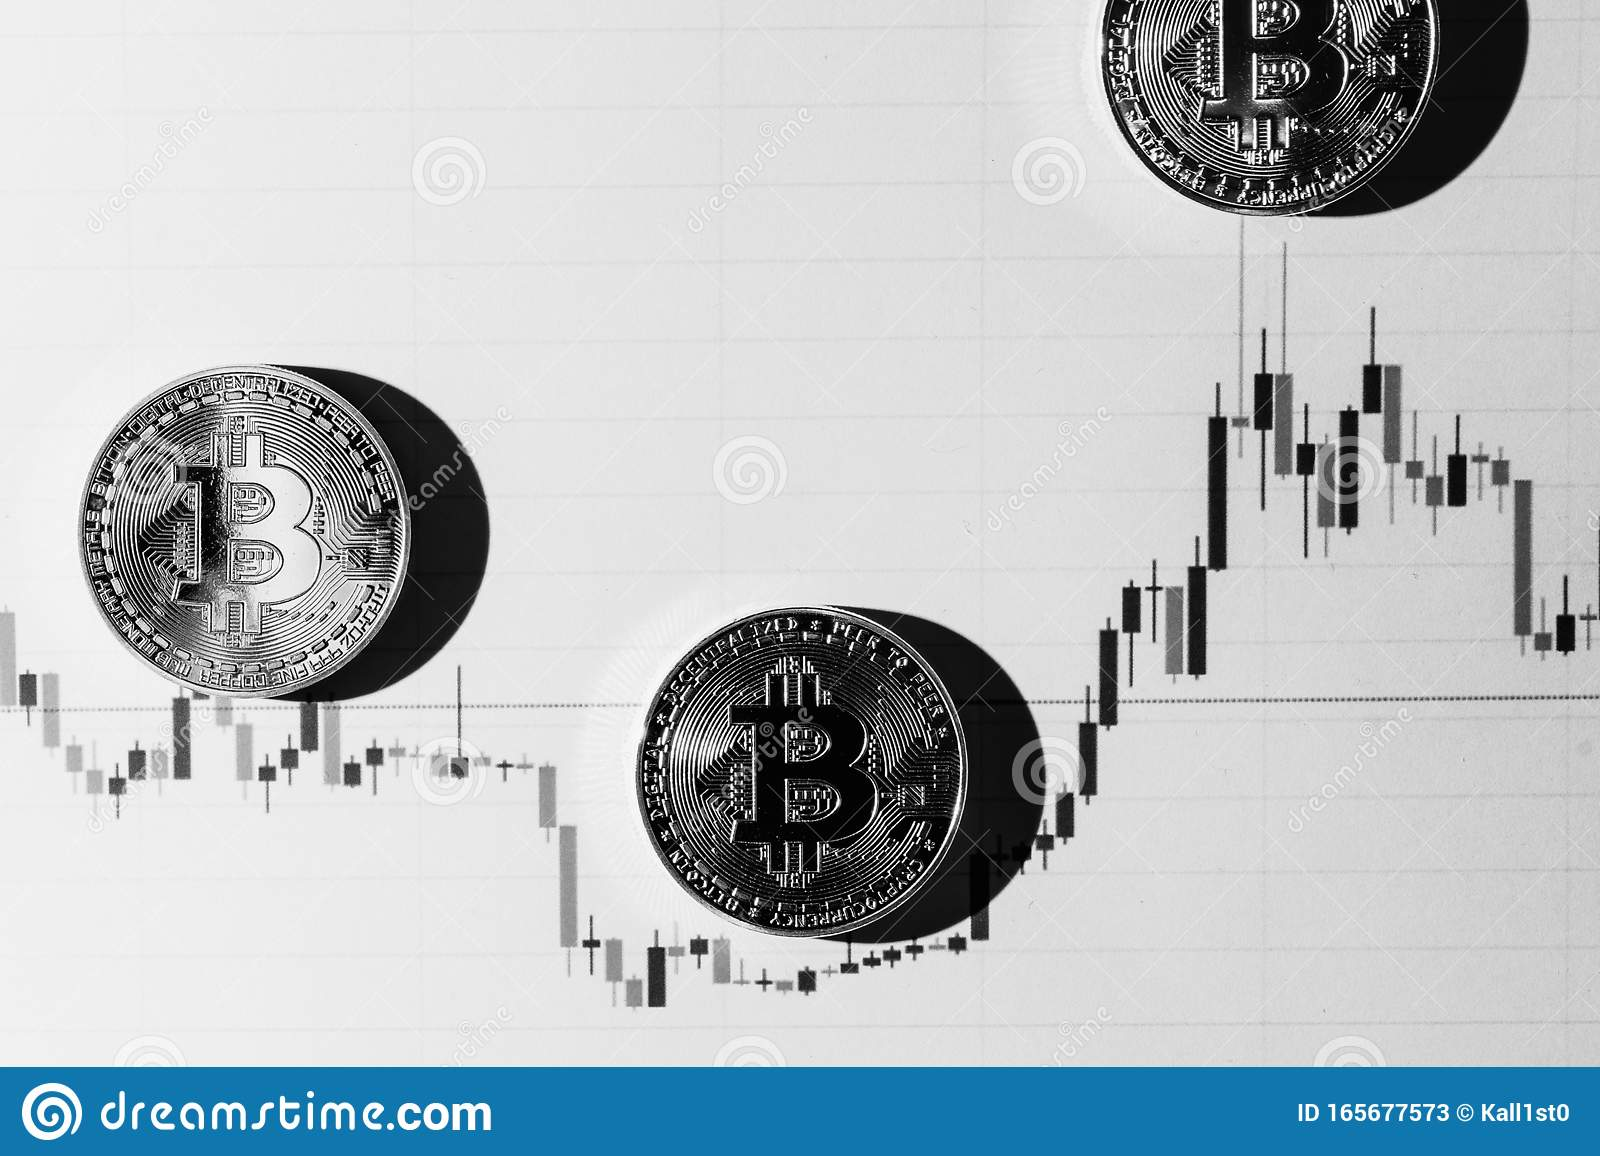 cryptocurrency trading stocks